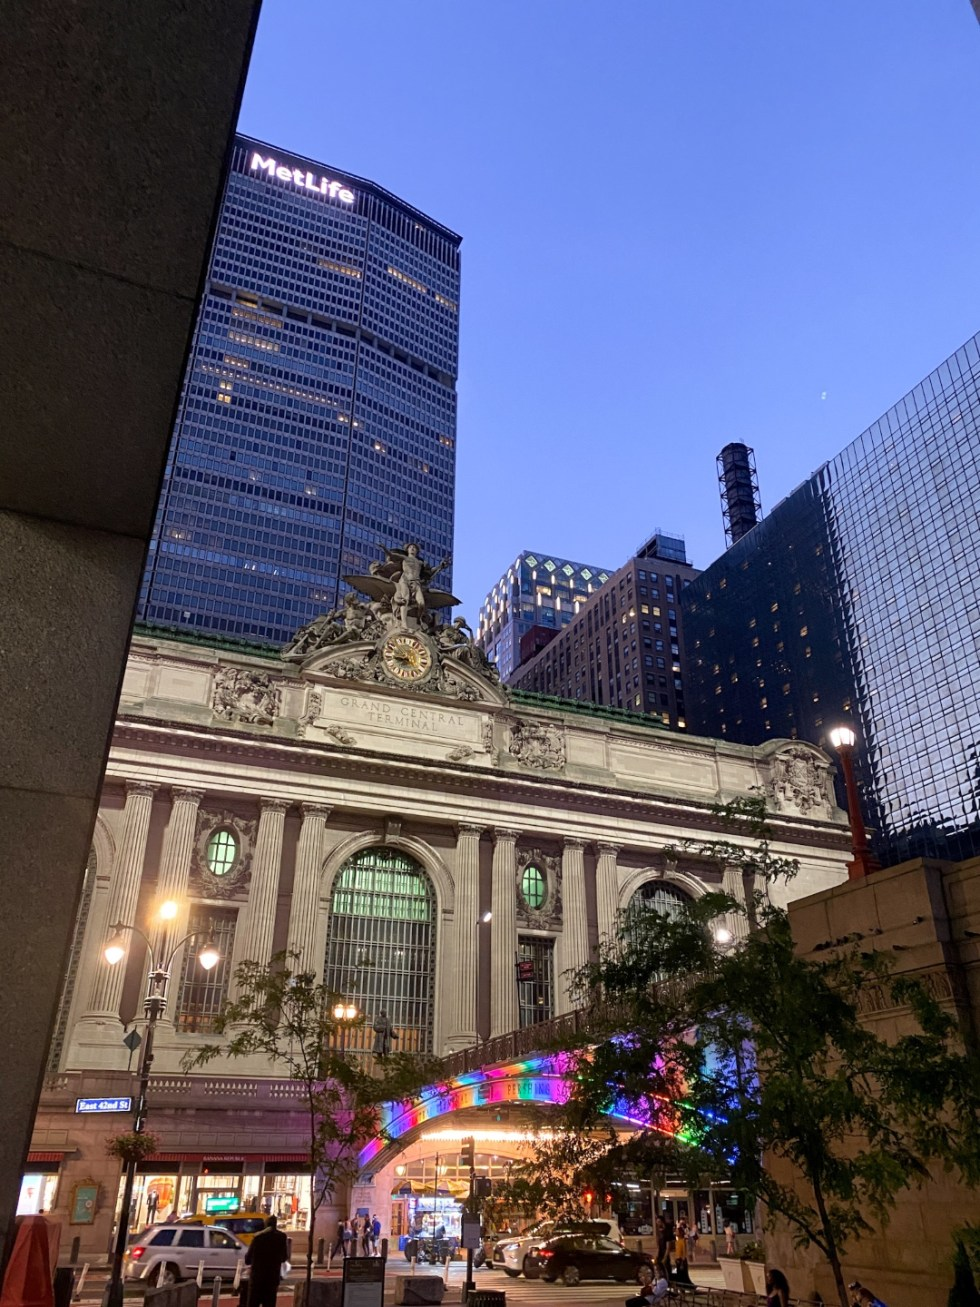 NYC Summer Weekend: Things to Do in NYC in the Summer - I'm Fixin' To - @imfixintoblog   NYC Summer Weekend by popular NC travel blog, I'm Fixin' To: image of the Grand Central Terminal.